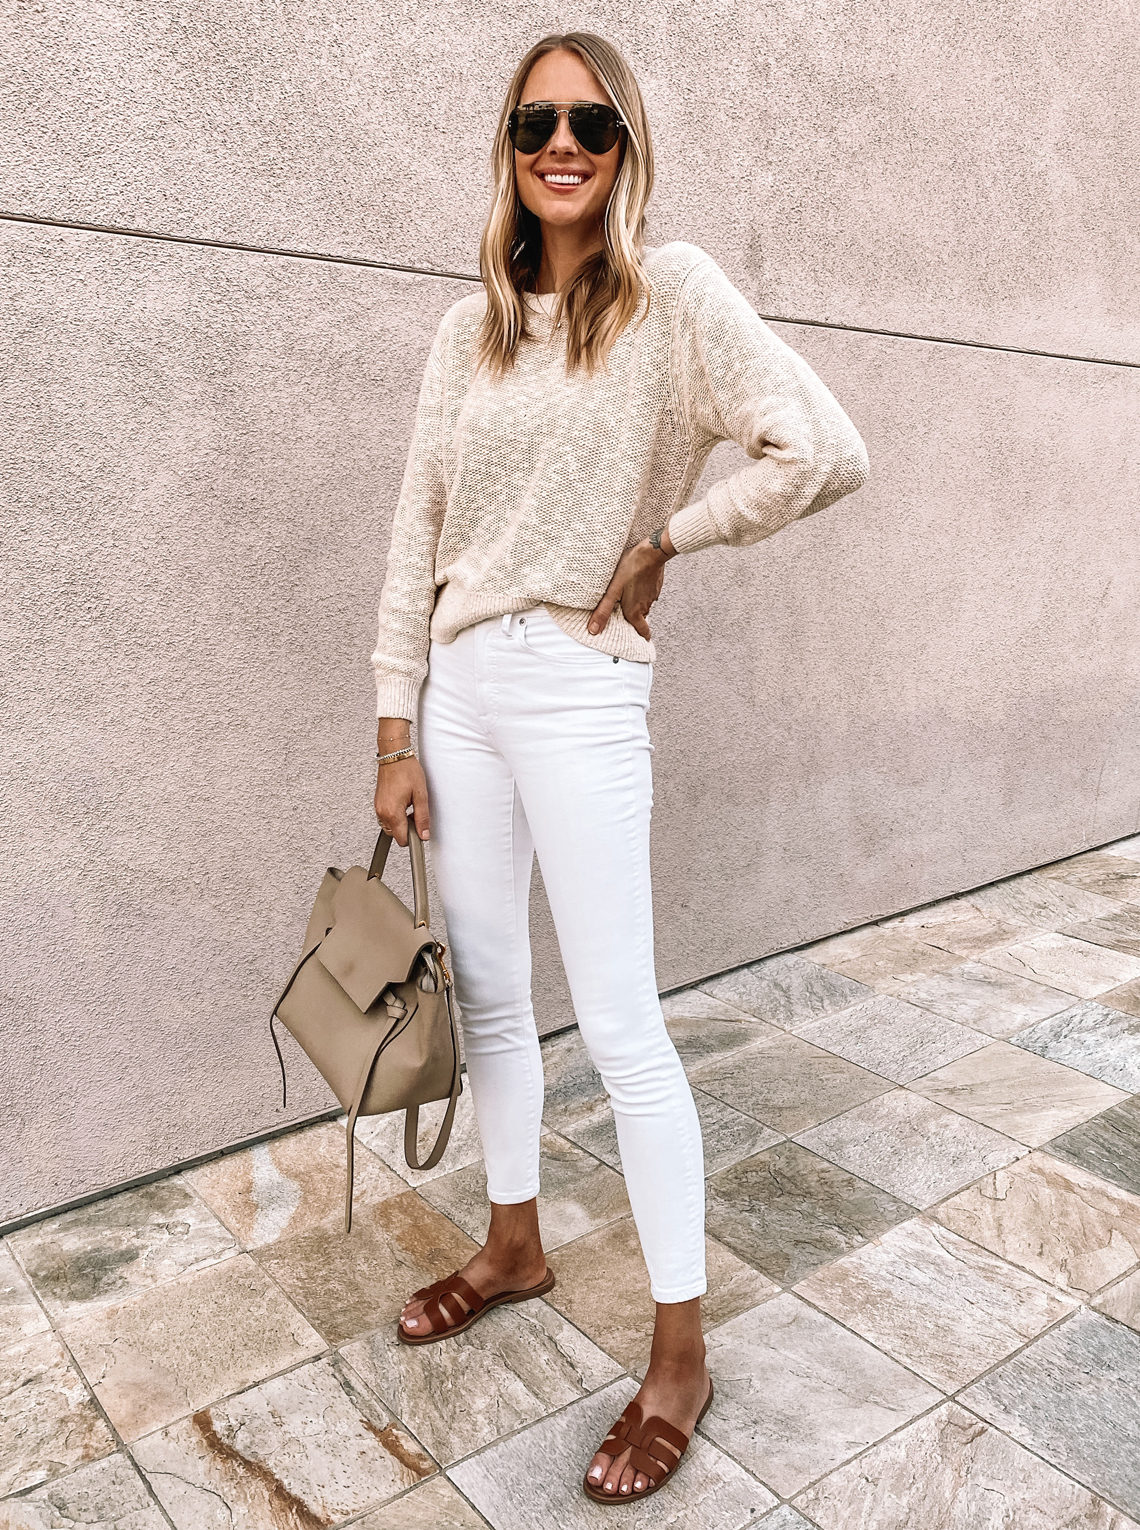 Fashion Jackson wearing Everlane white jeans, Everlane beige sweater, Celine mini belt bag, brown sandals